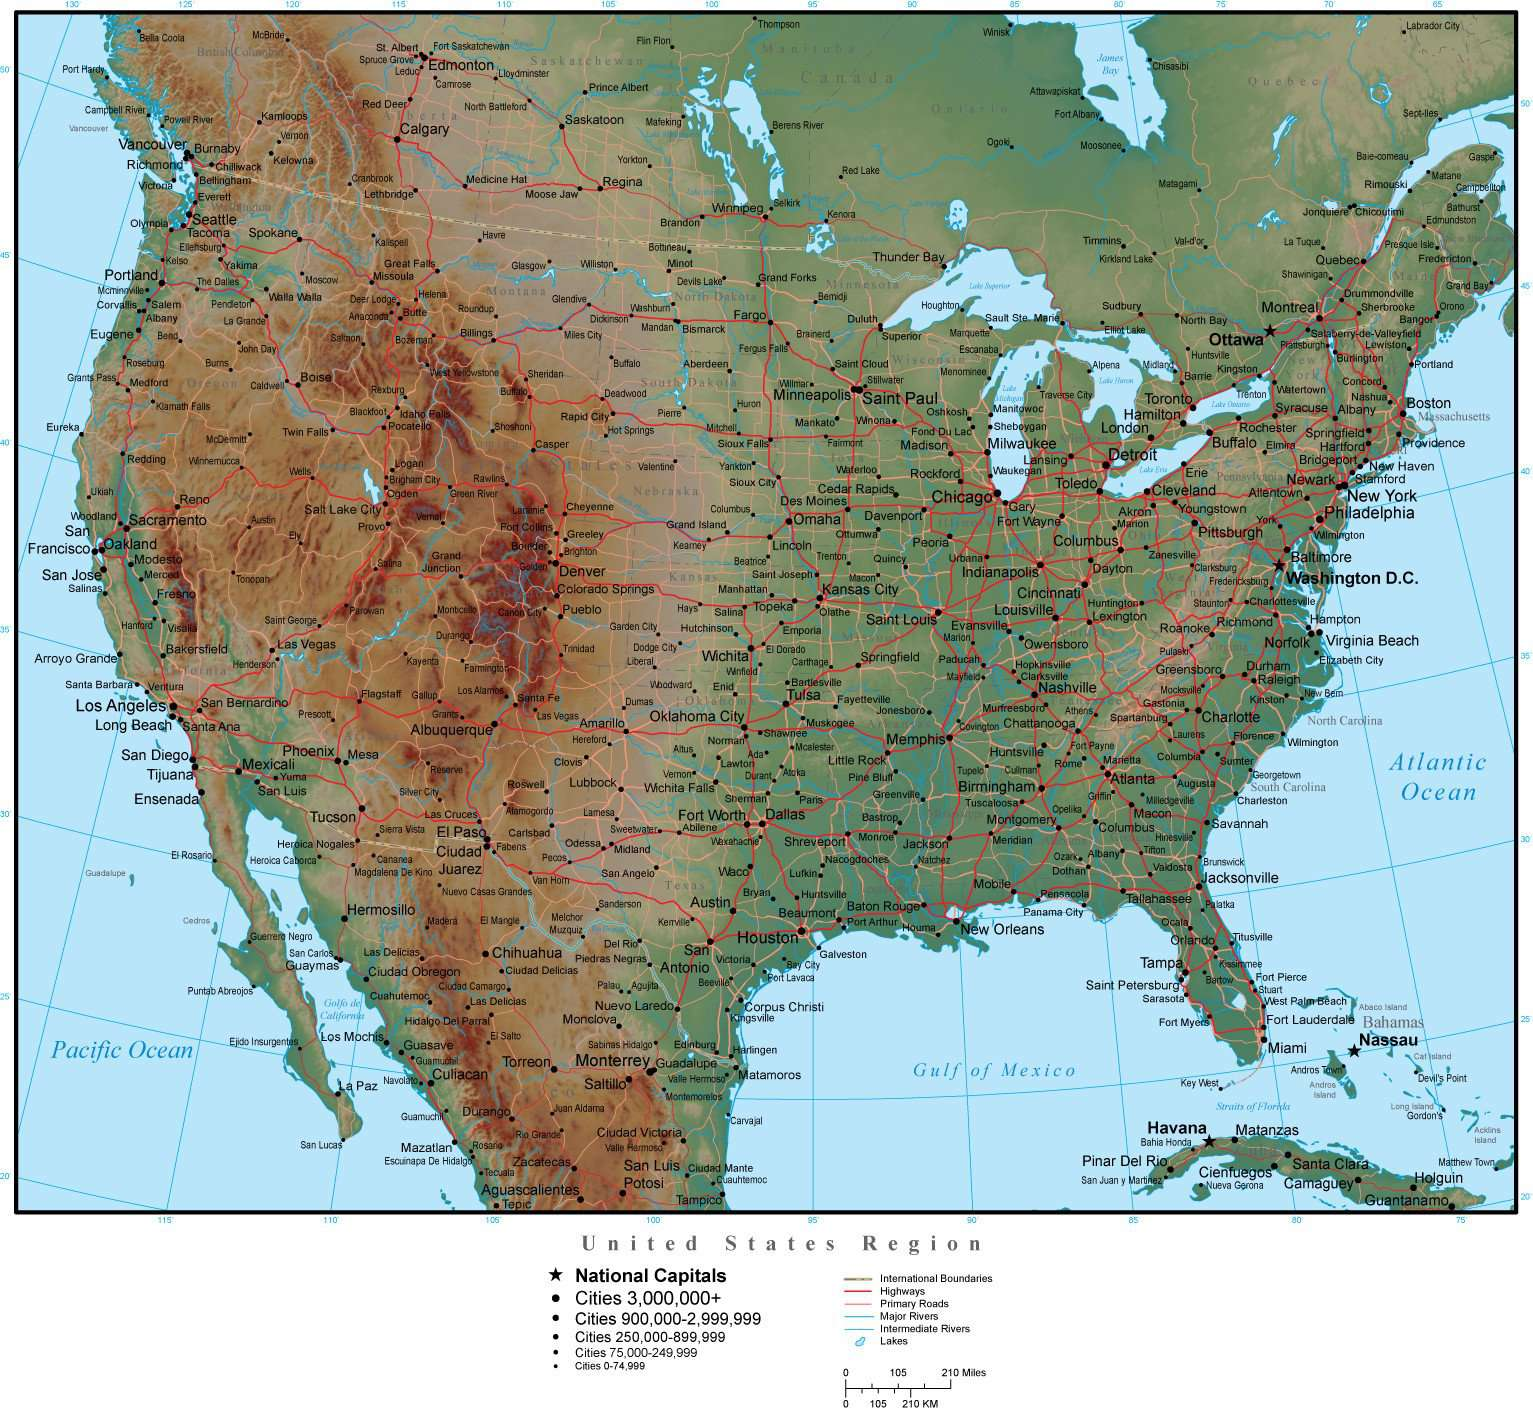 USA Region Map Plus Terrain with Countries, US States, Capitals, Cities, on countries border belize, countries border bangladesh, countries border brazil, countries border armenia, countries border venezuela, countries border paraguay, countries border croatia, countries border guatemala, countries border thailand, countries border ireland, countries border argentina, countries border bhutan, countries border israel, countries border europe, countries border czech republic, countries border france, countries border lebanon, countries border portugal, countries border colombia, countries border ethiopia,